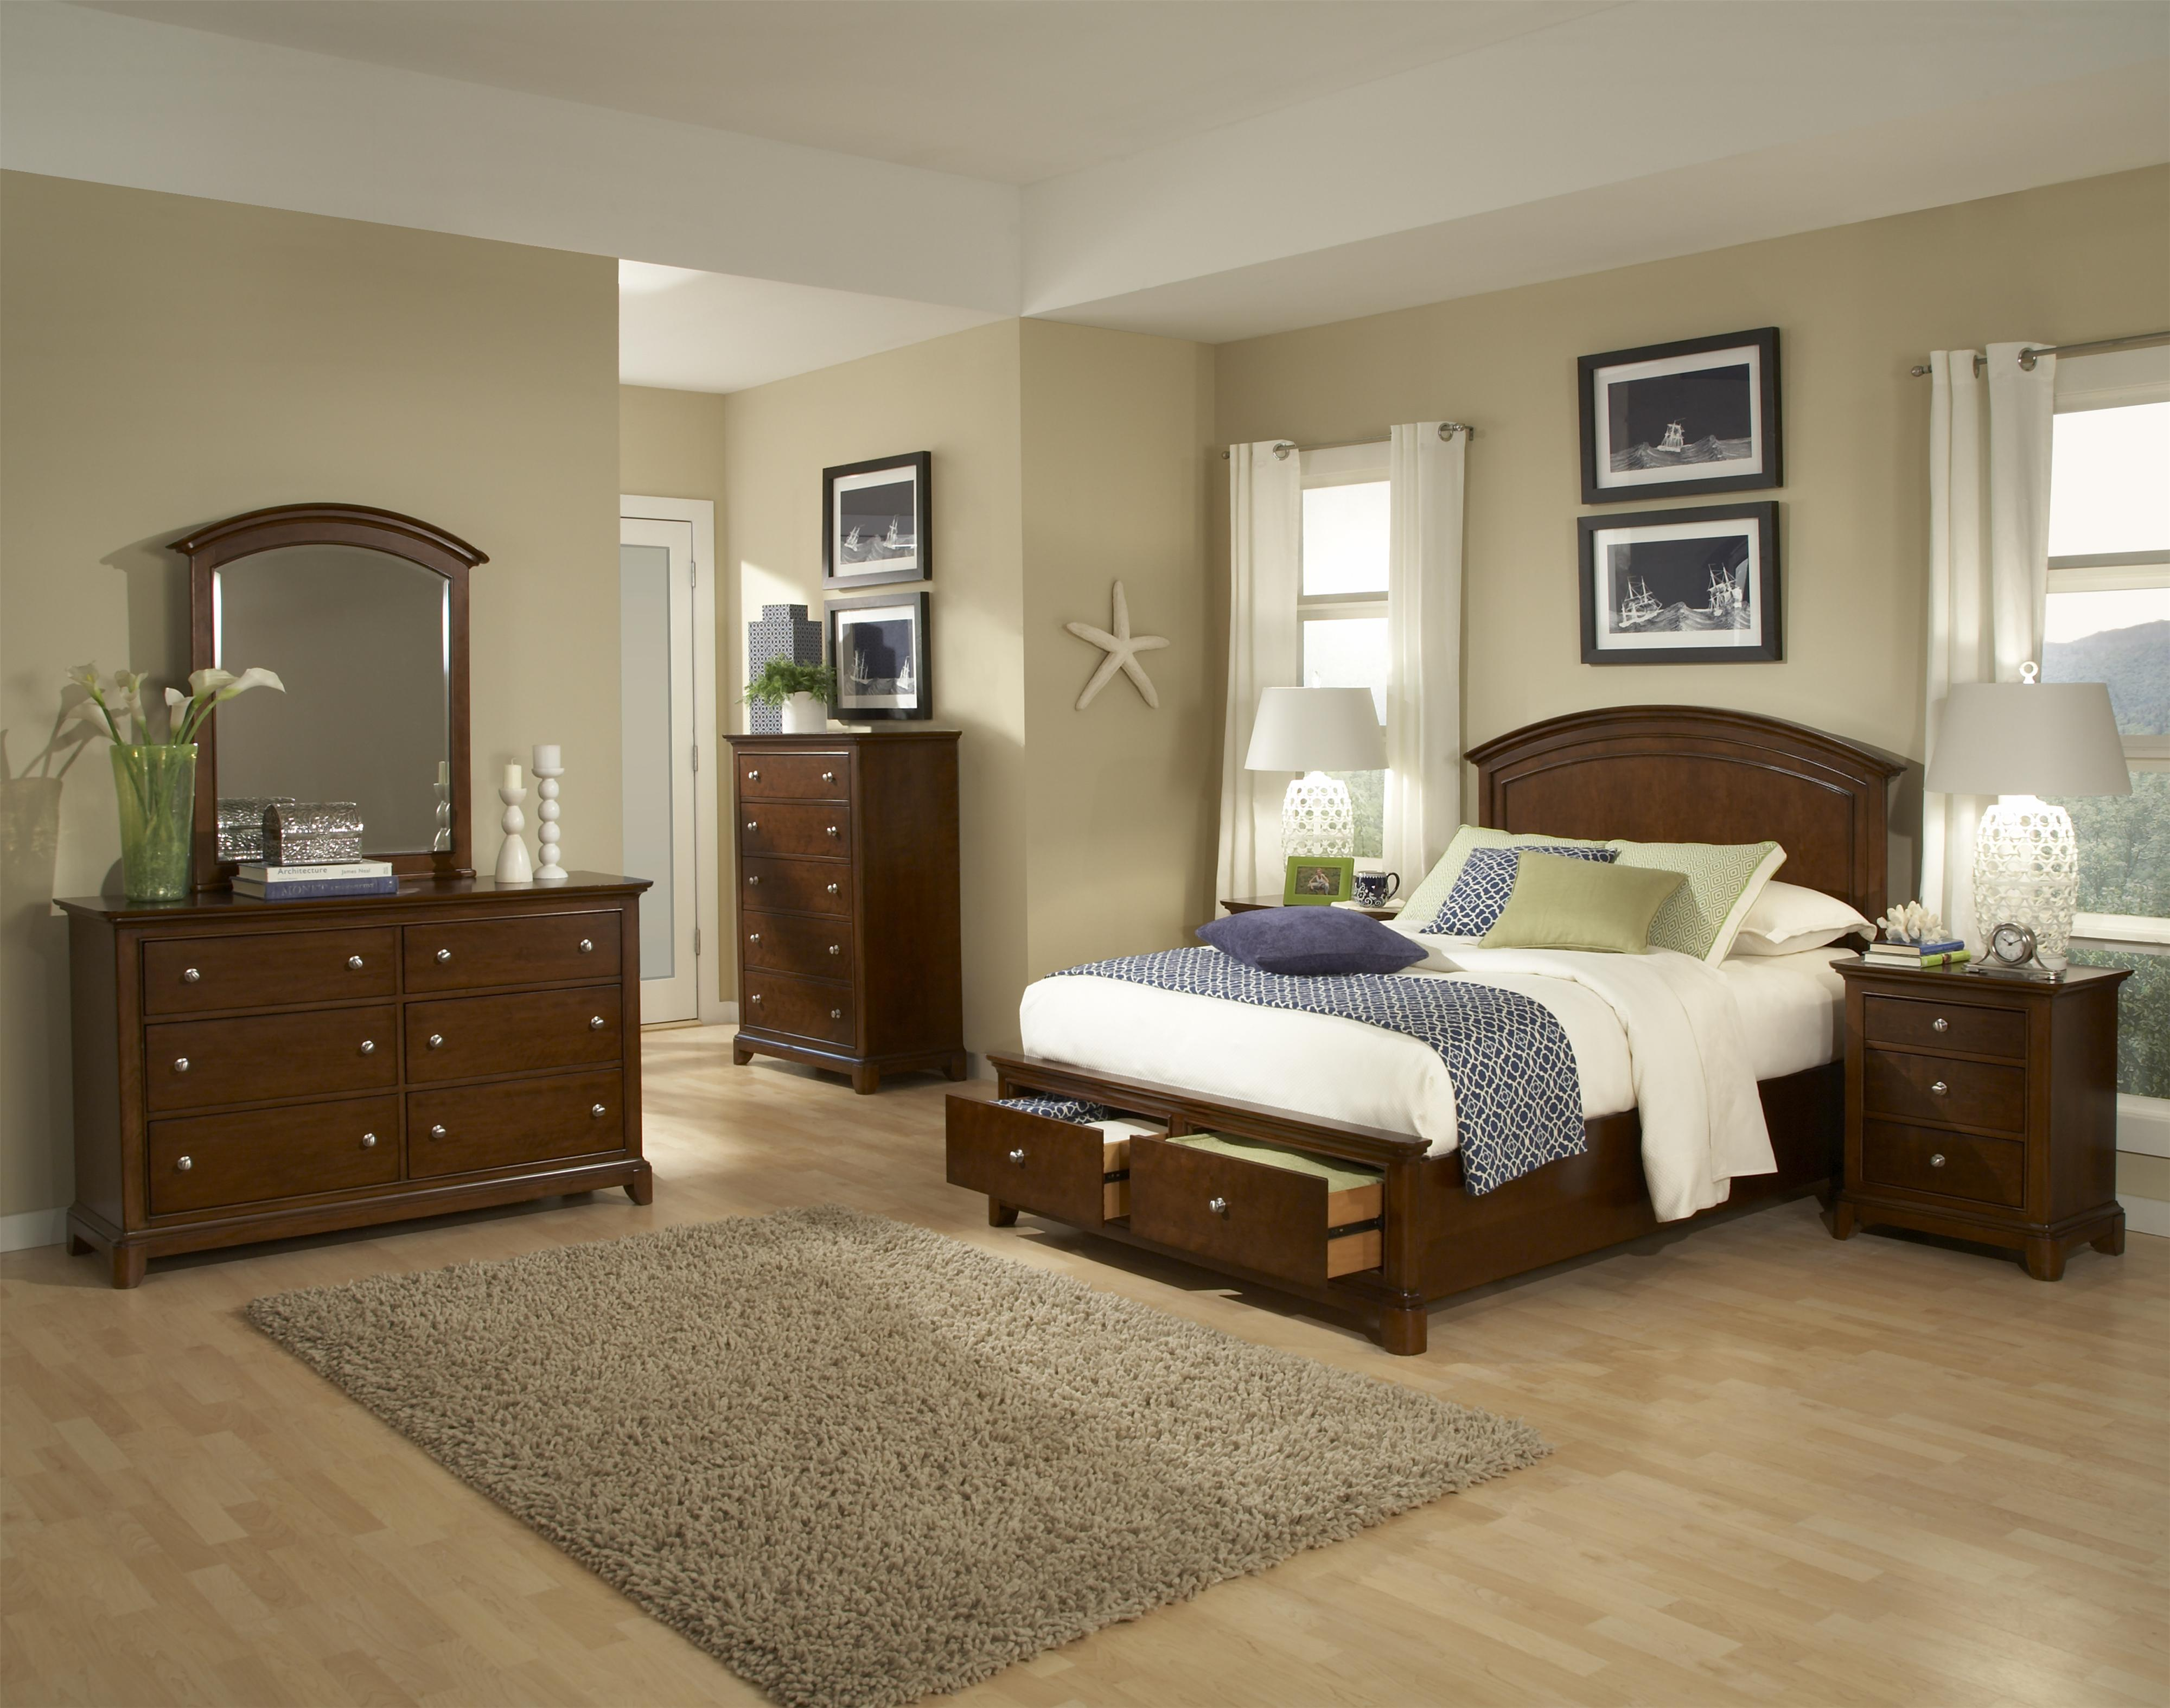 Legacy Classic Kids Impressions Full Bedroom Group - Item Number: 2880 F Bedroom Group 7